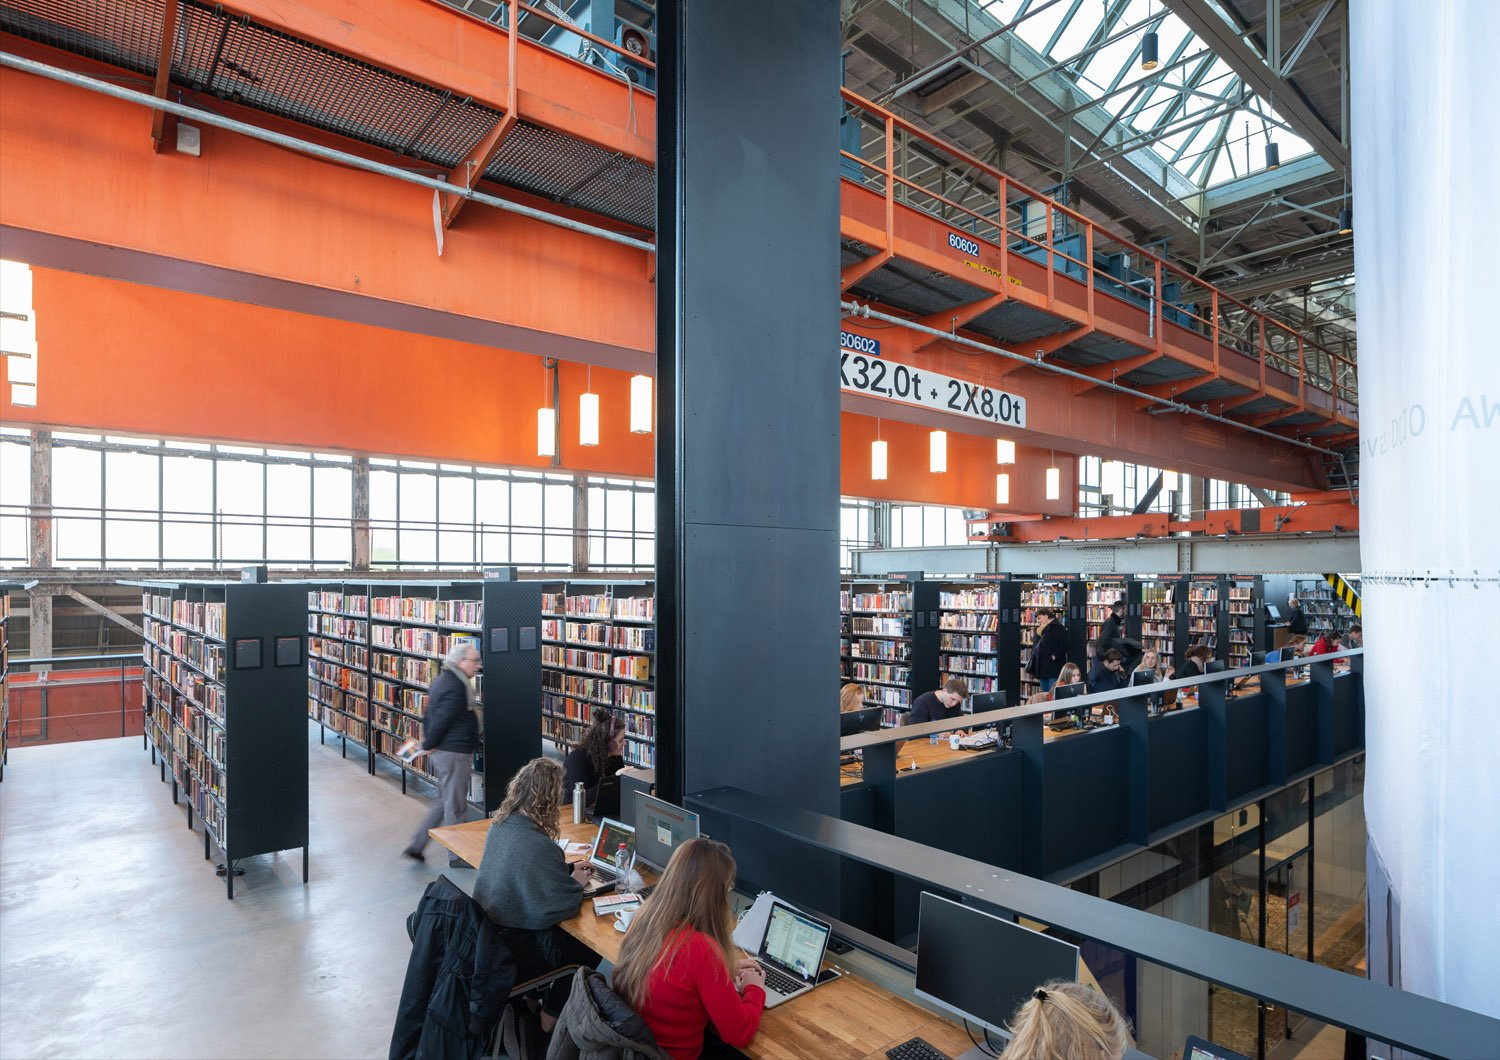 The LocHal is not only a library, but also a laboratory where you are challenged, gain new knowledge and learn about new innovations. Ossip van Duivenbode